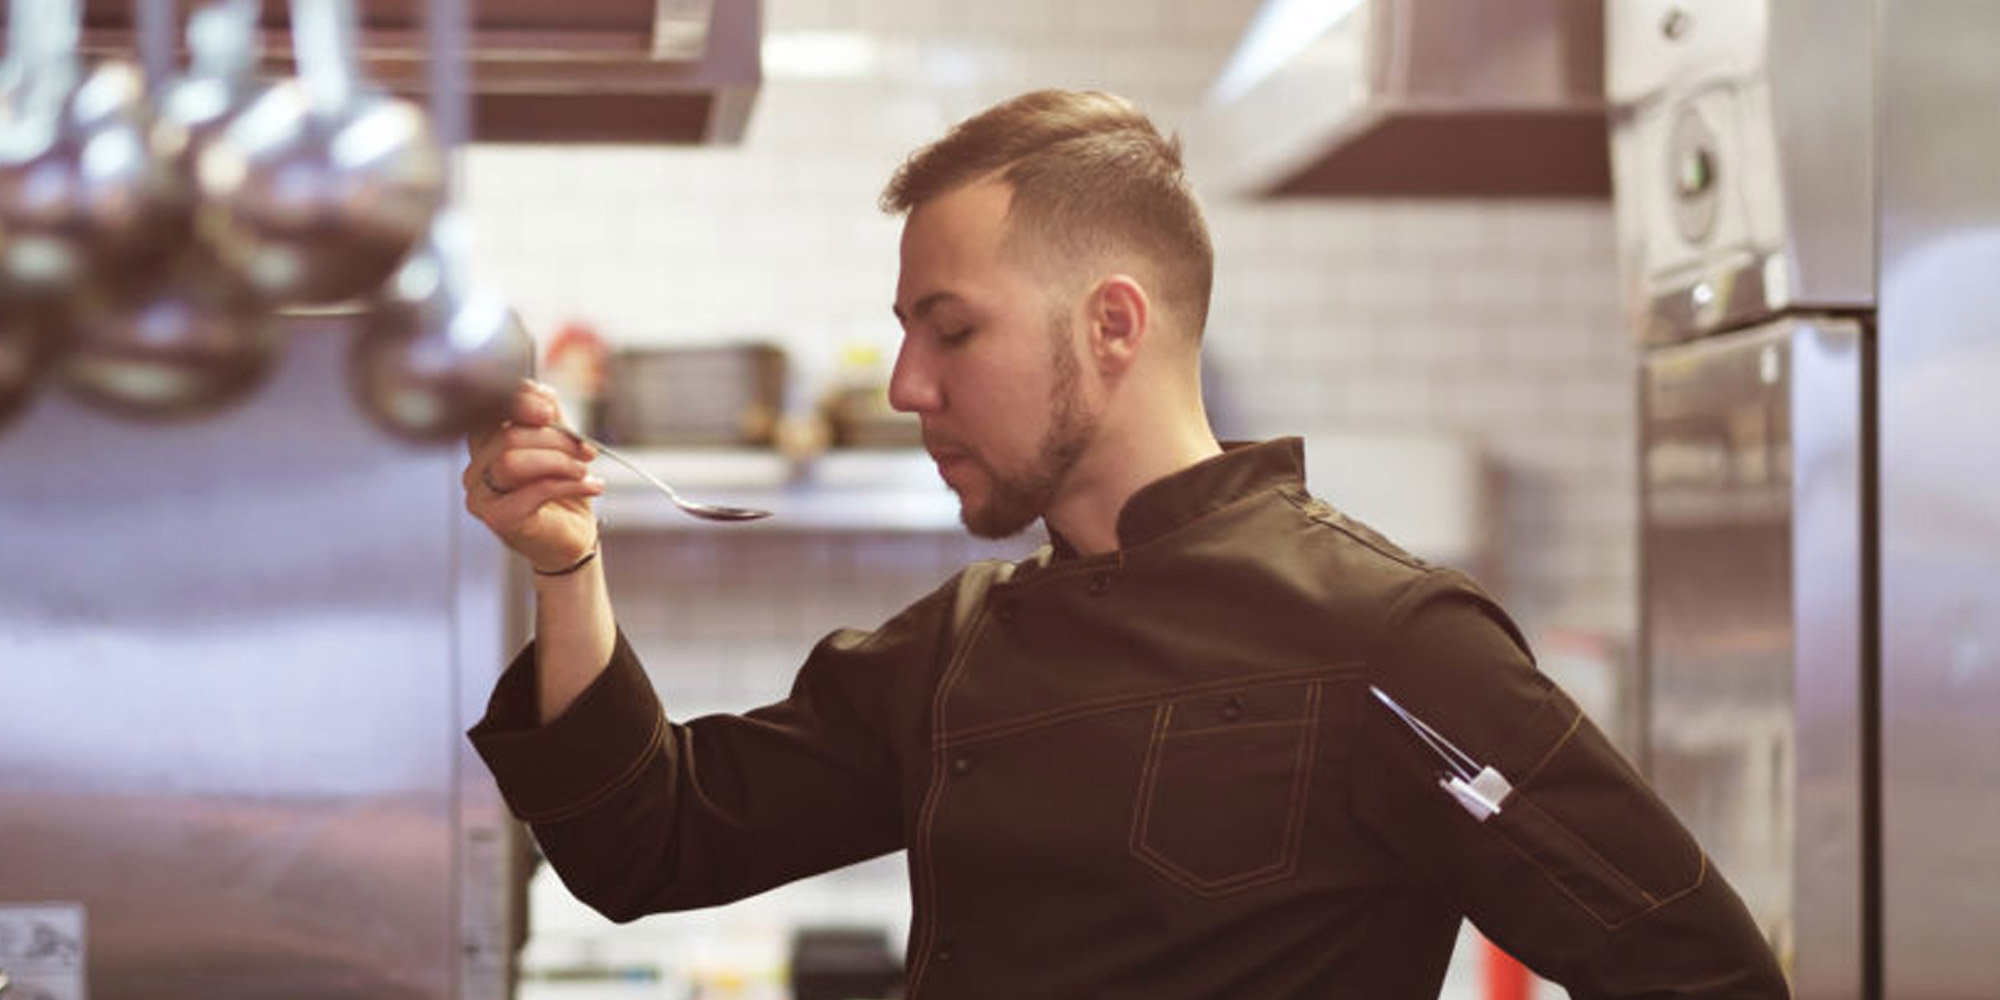 WSJ: Chefs Speak Out on Mental Health in the Restaurant Industry